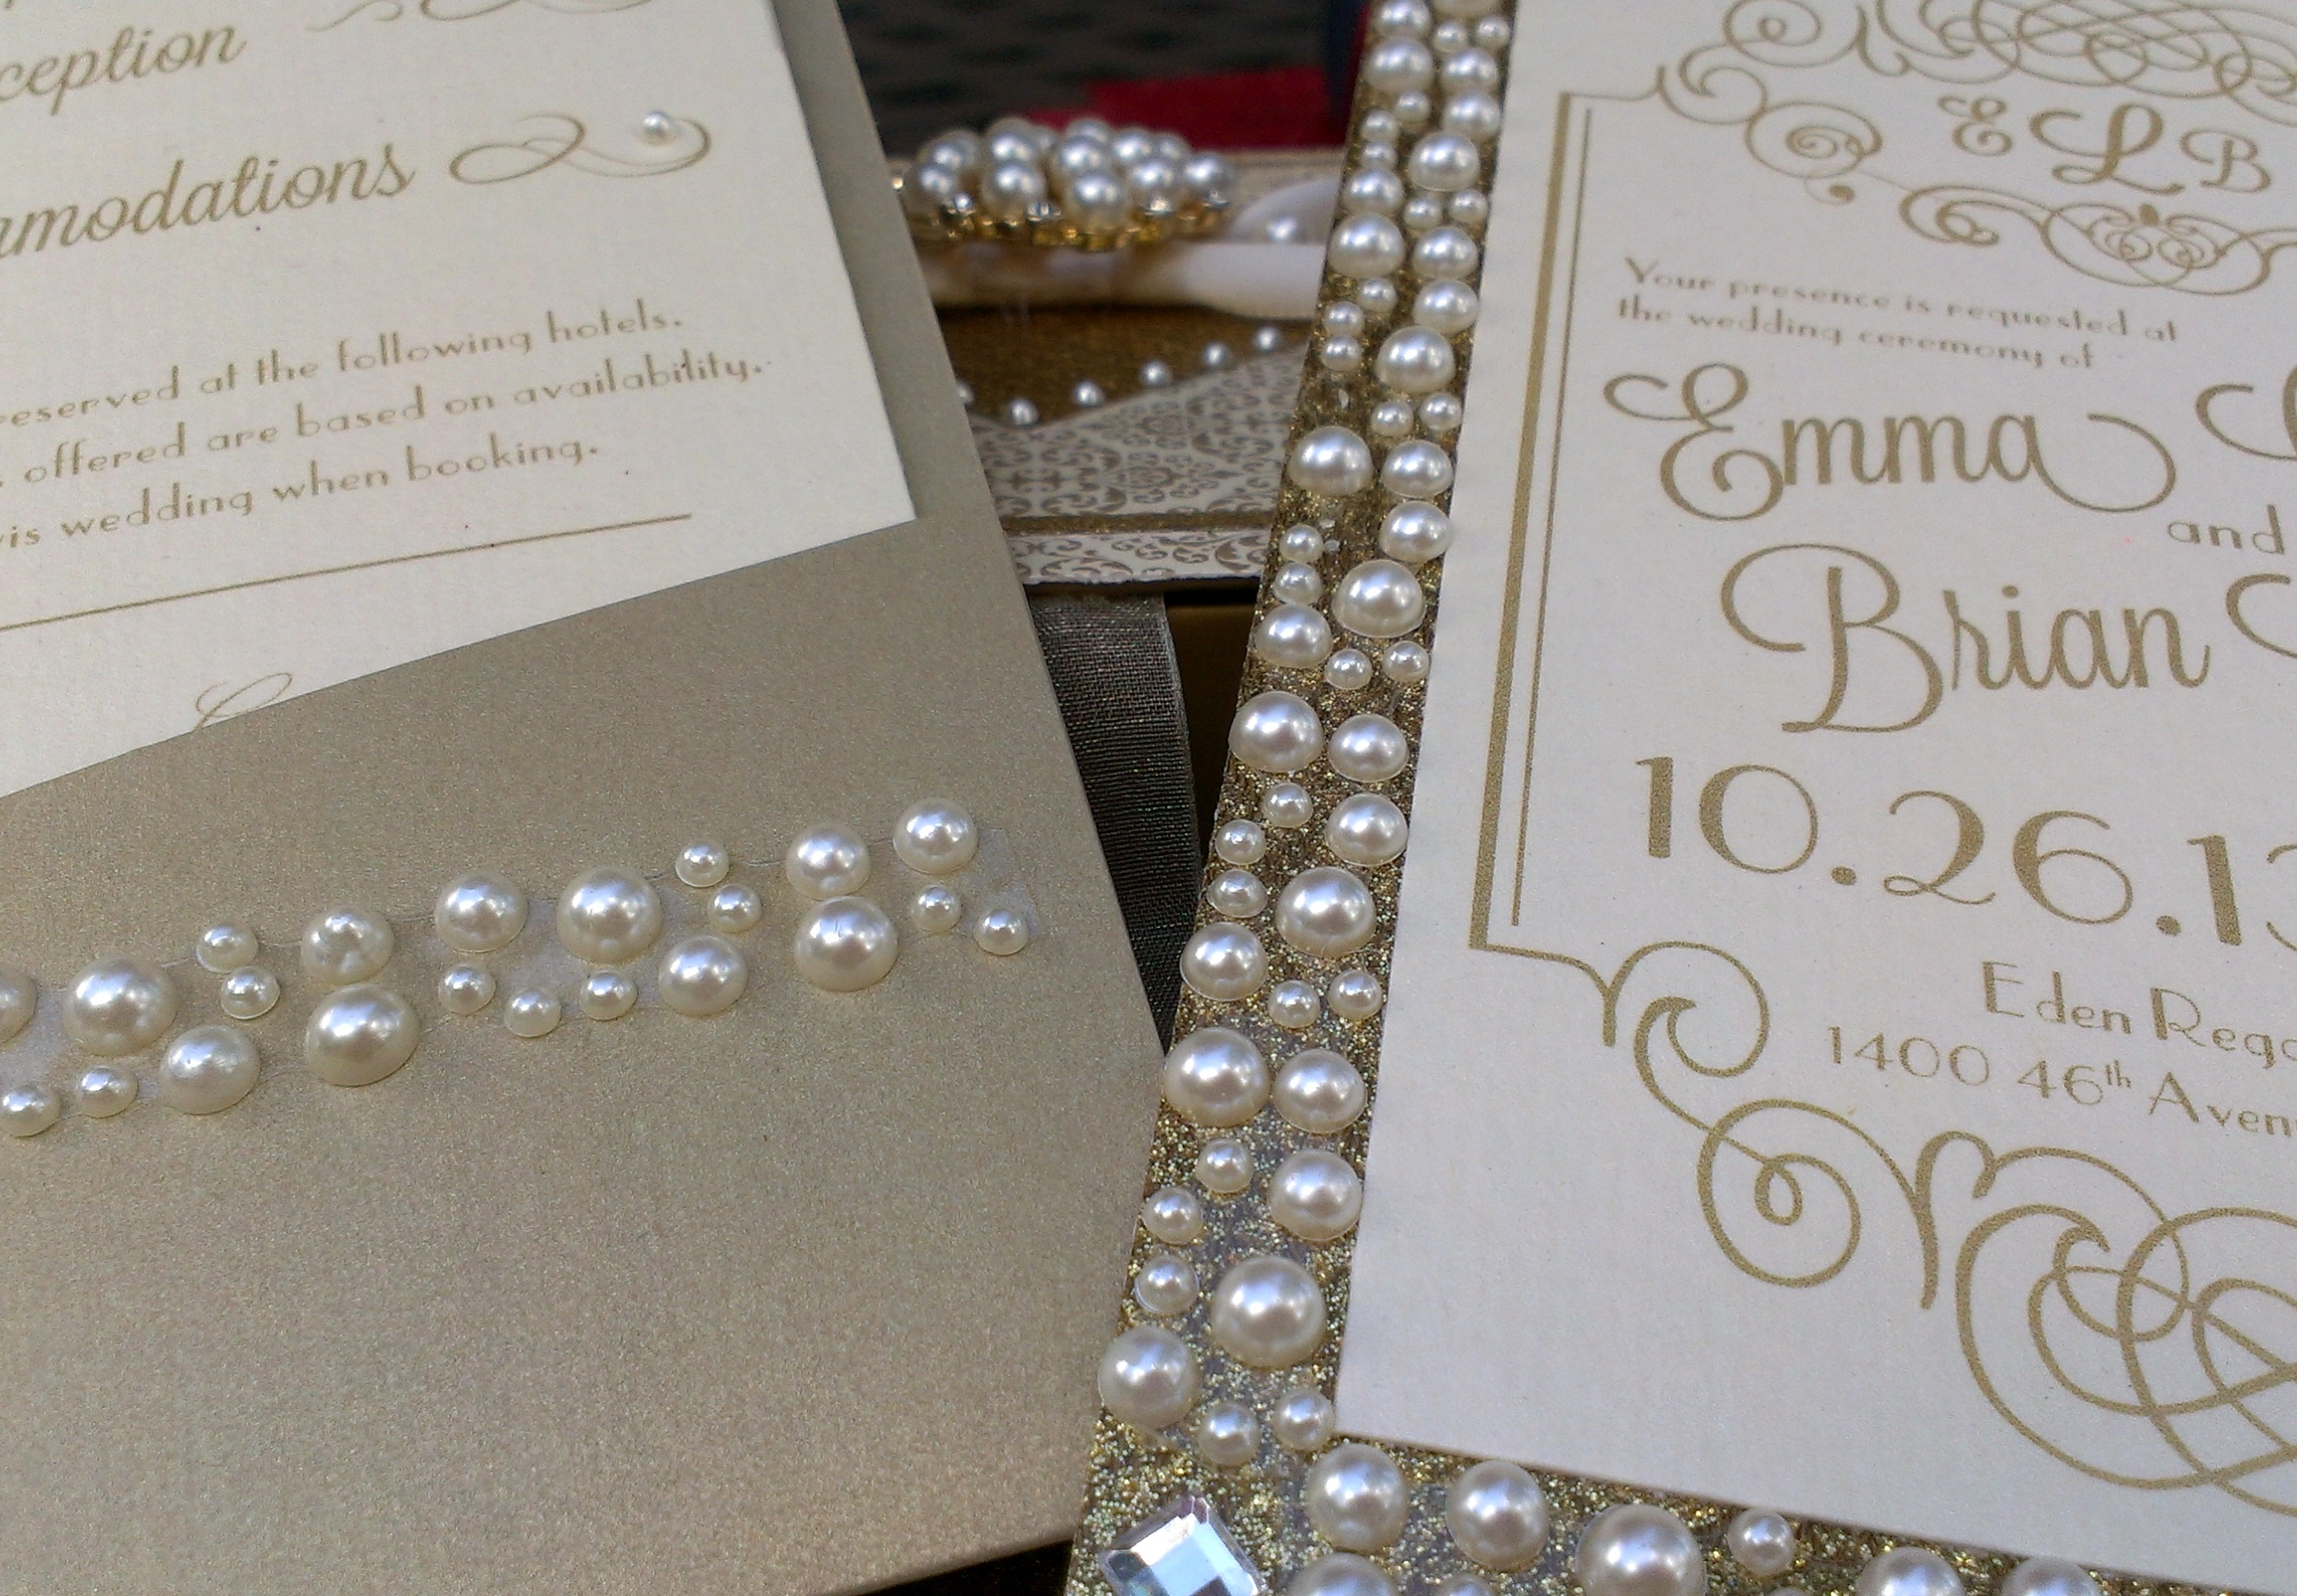 2 gatsby wedding invitations This invitation combines the Gatsby theme with the new trend in Musical Invitations and use of